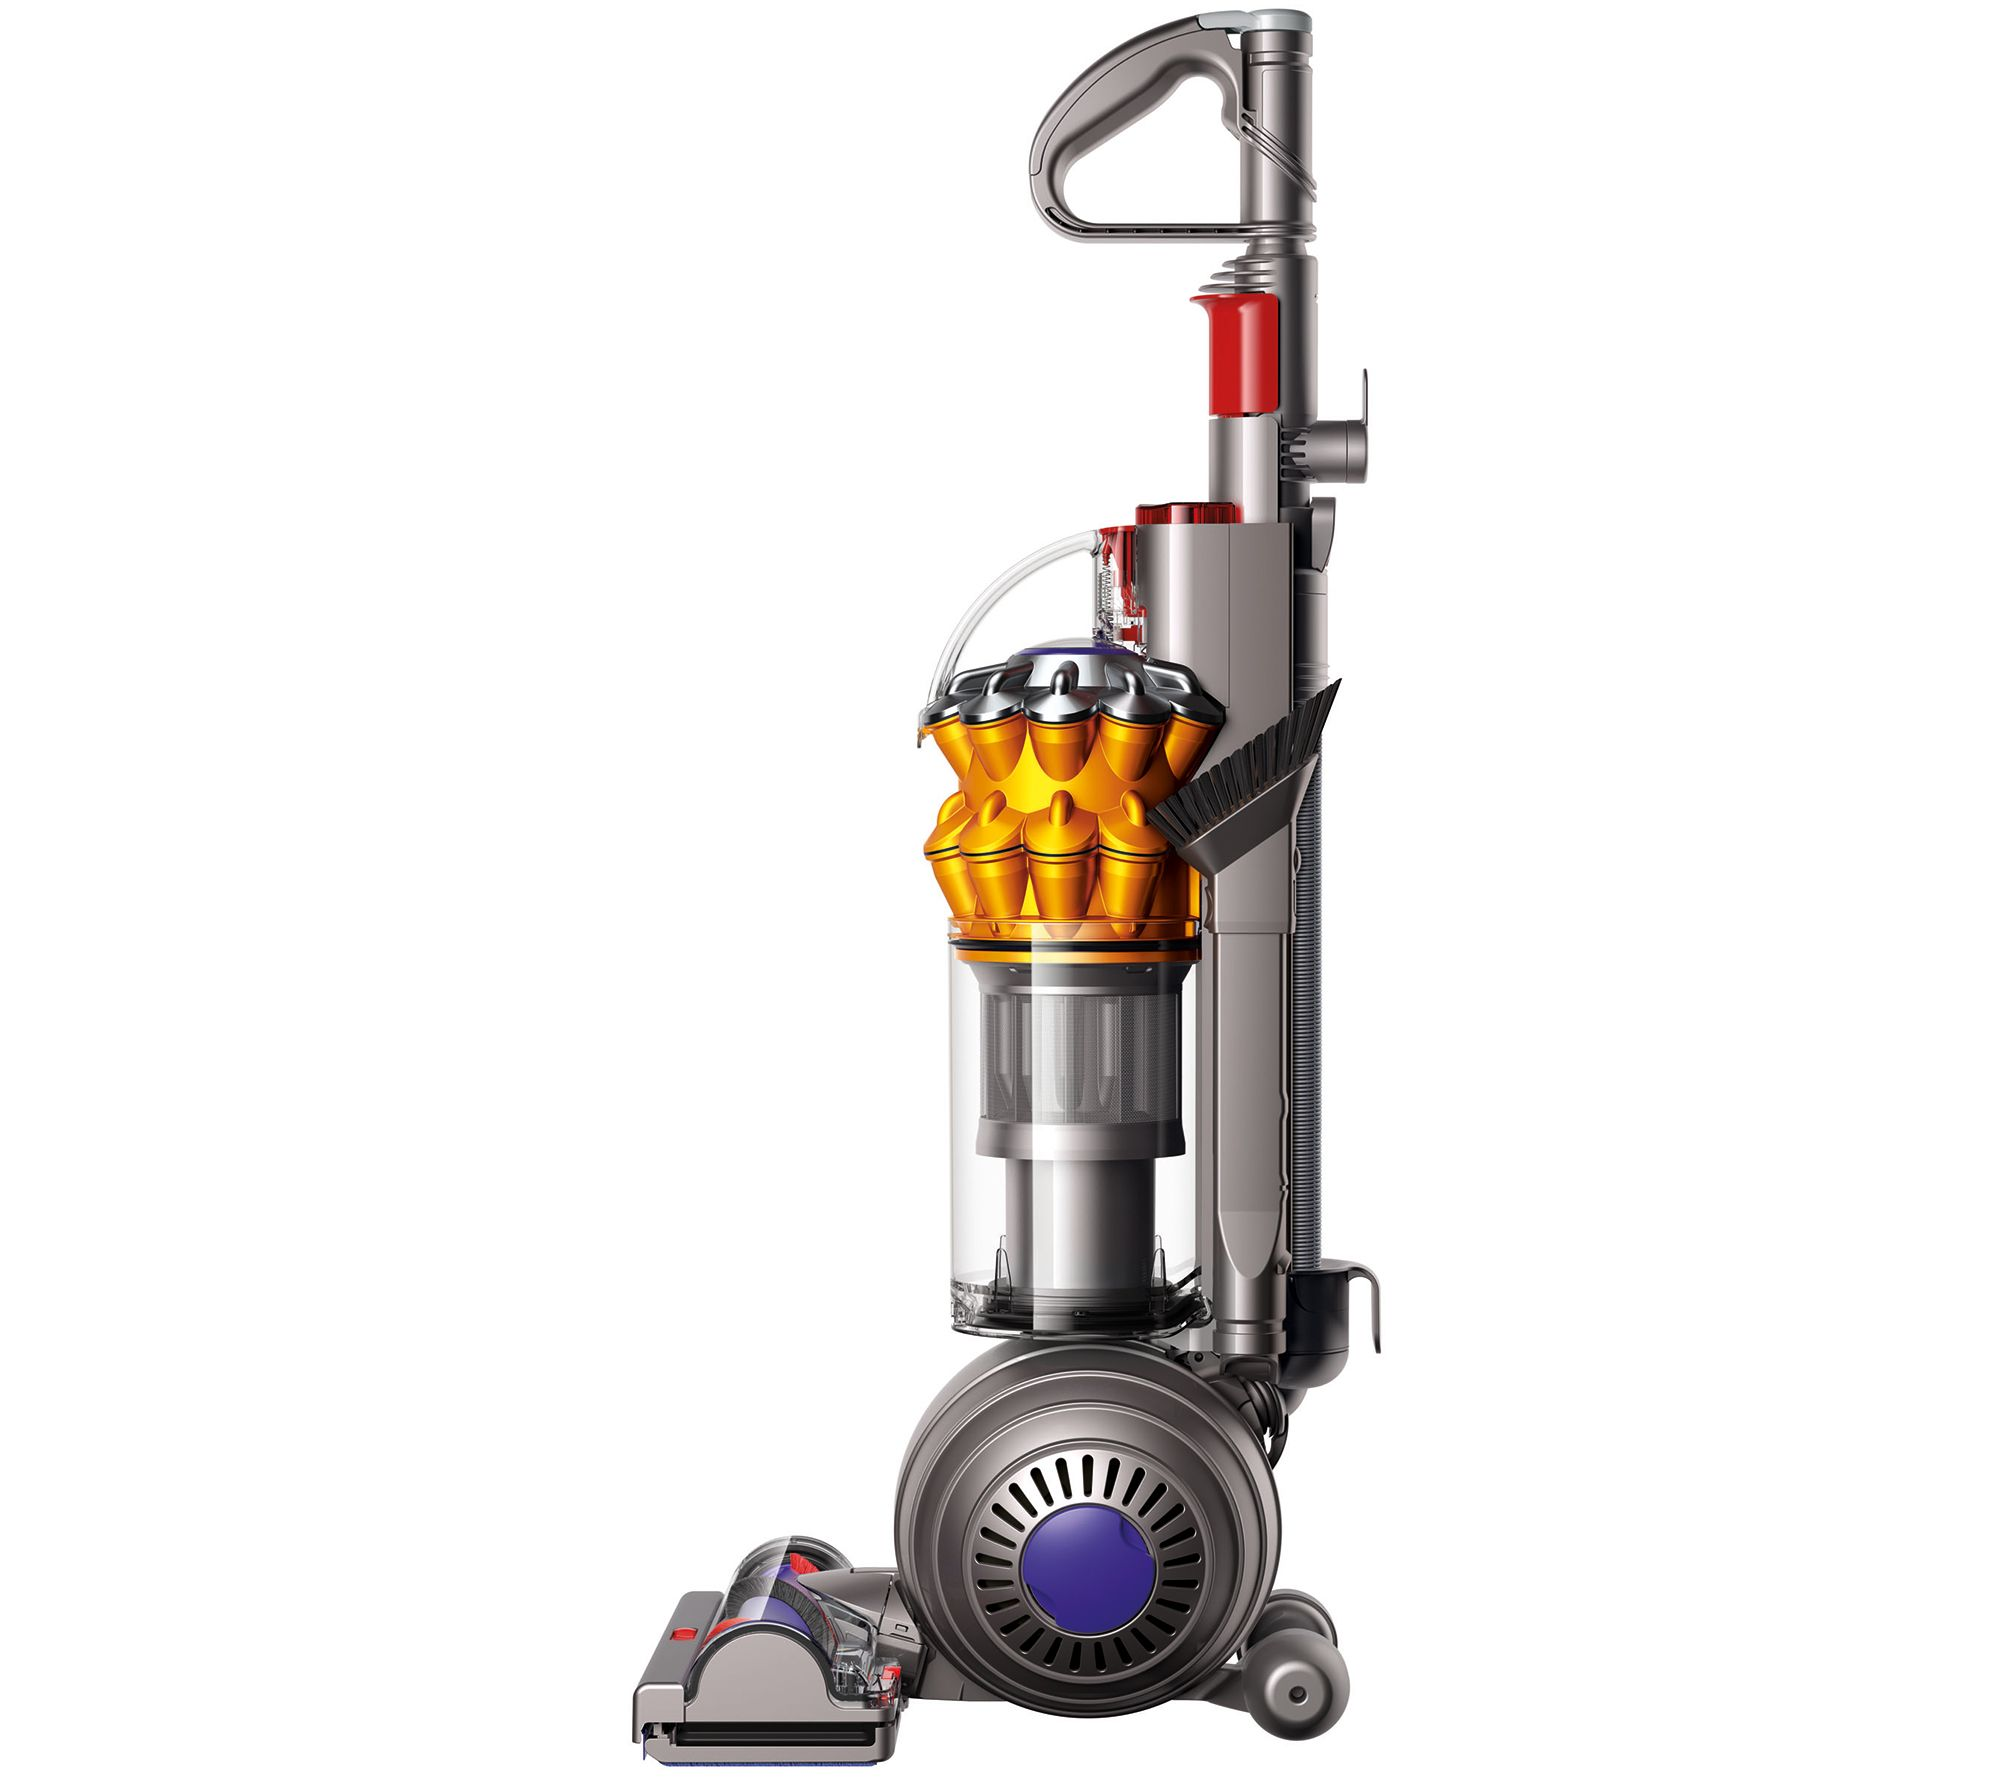 Dyson Small Ball Multifloor Upright Vacuum Page 1 QVC